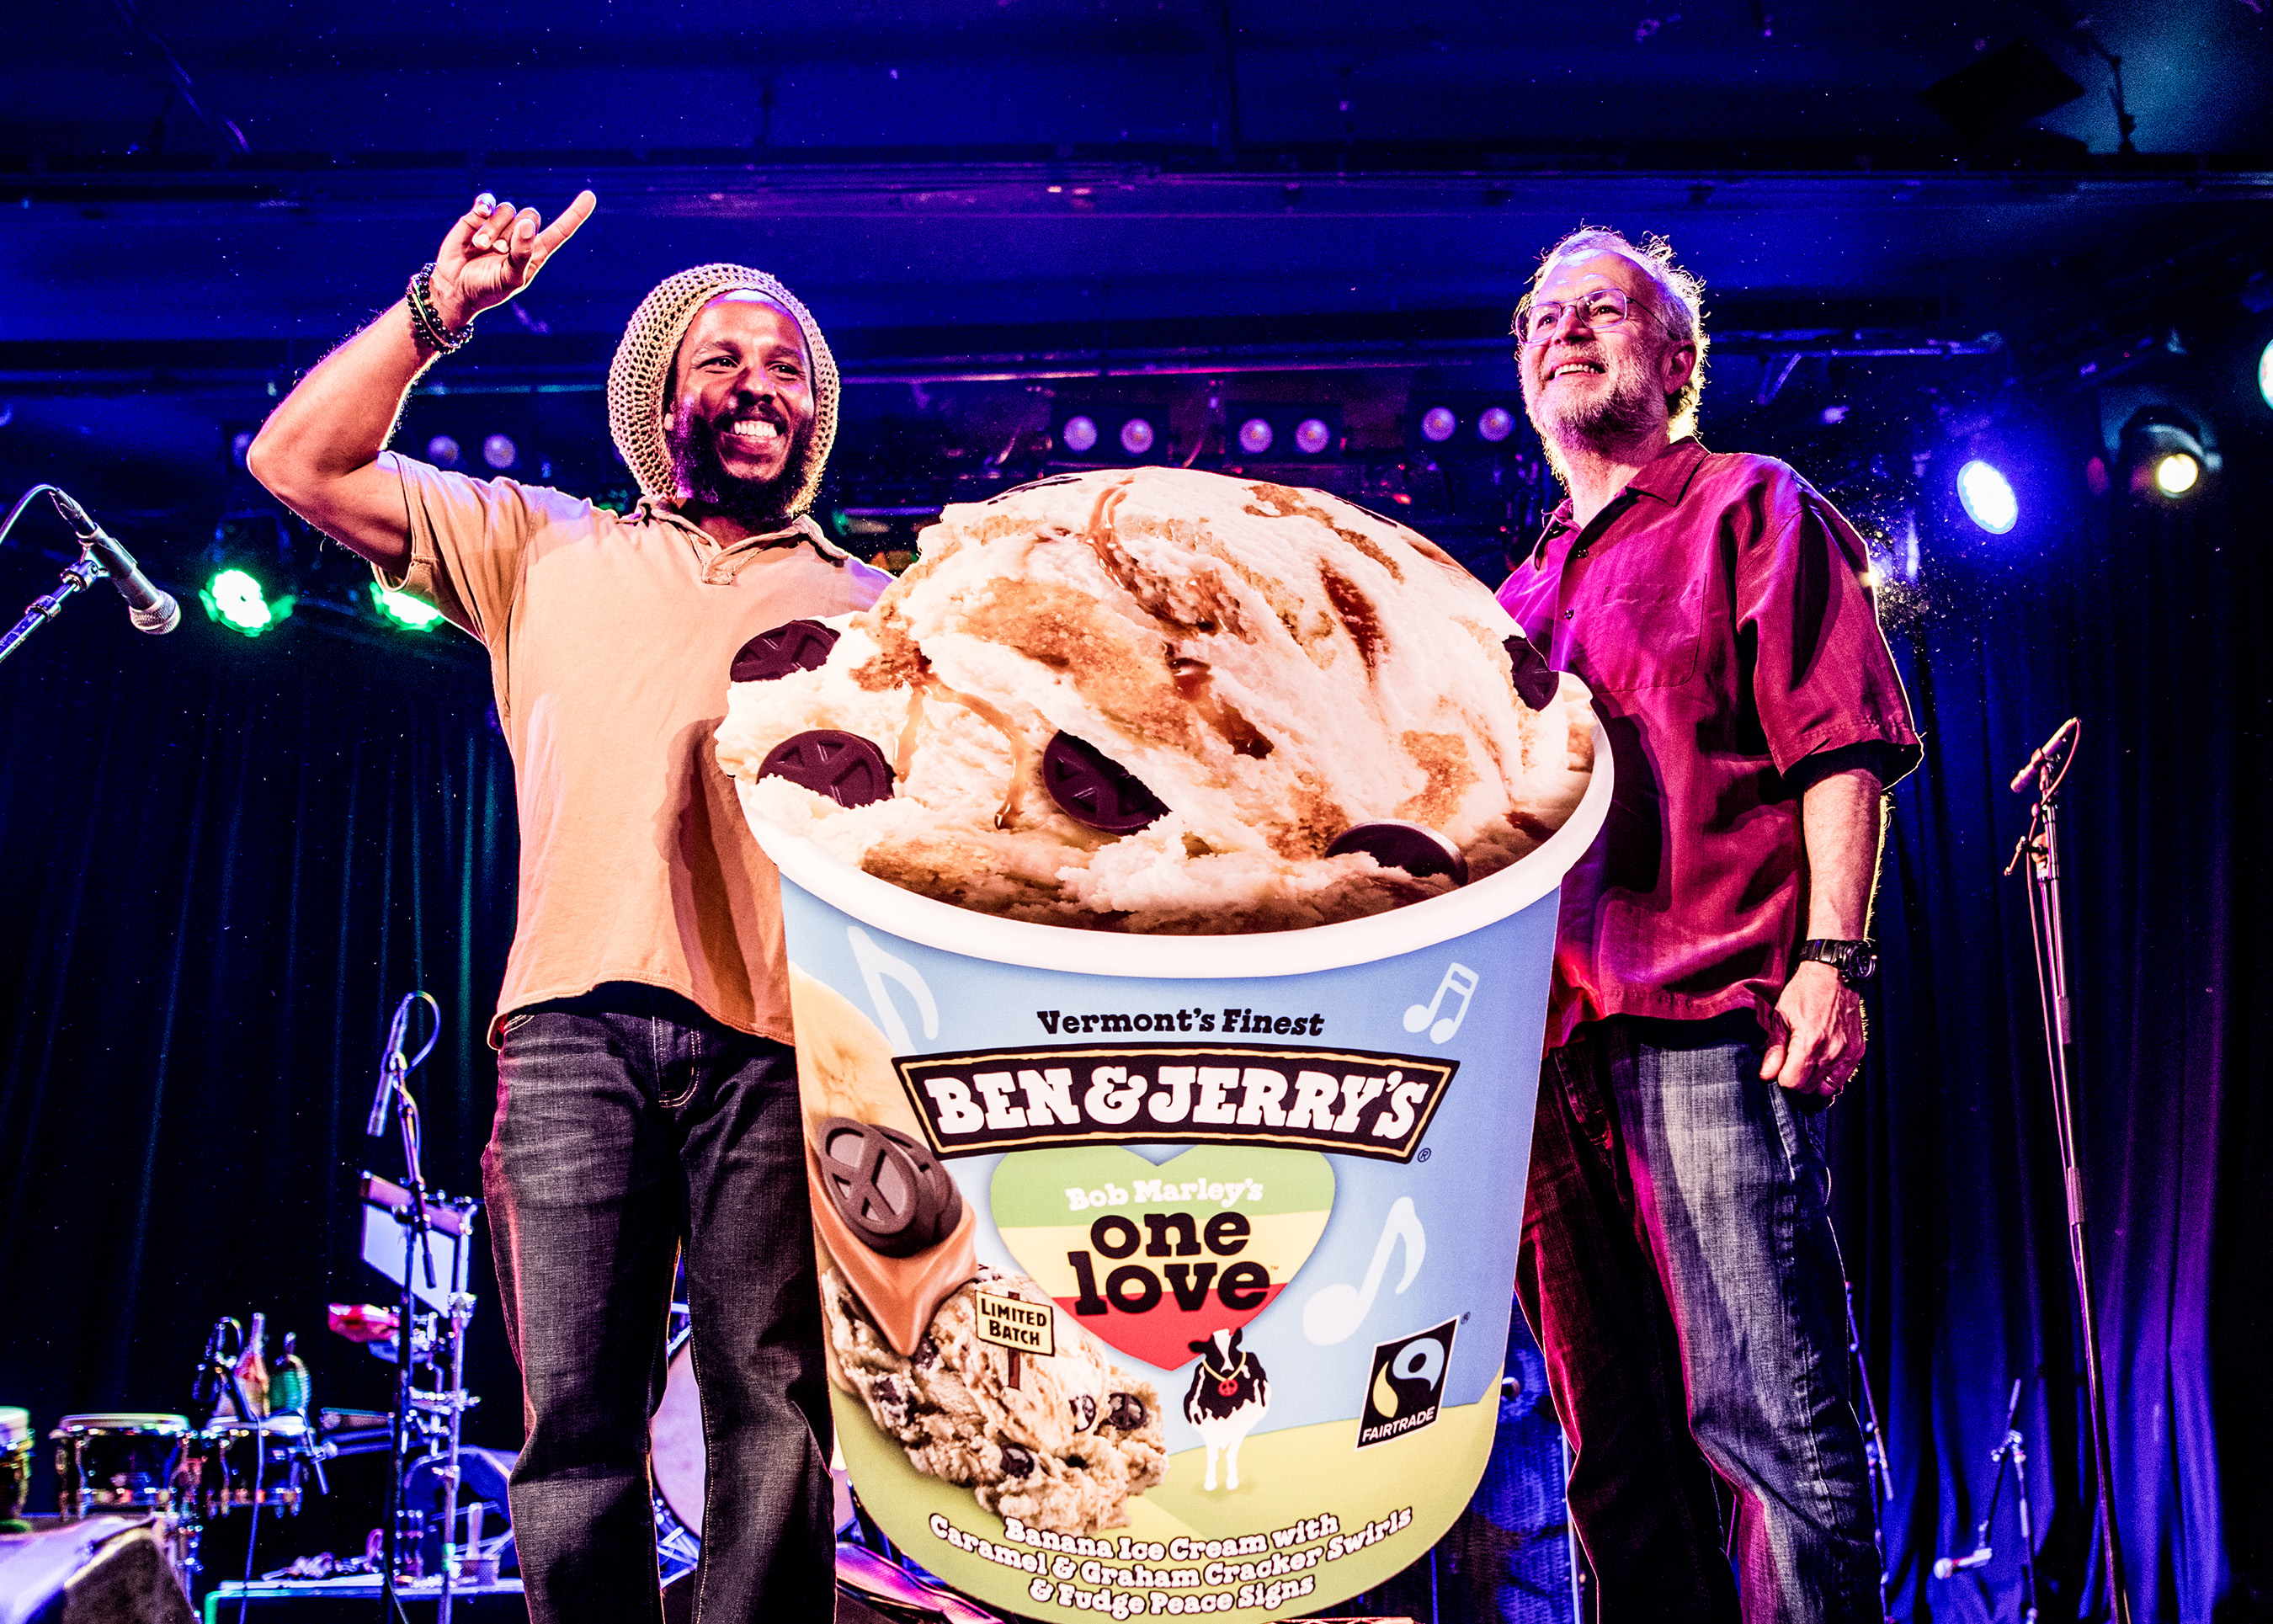 Ben & Jerry's and Ziggy Marley celebrated the launch of the new One Love limited batch flavor available at Scoop Shops and retailers nationwide in Los Angeles at the Roxy Theatre on Monday, May 22.